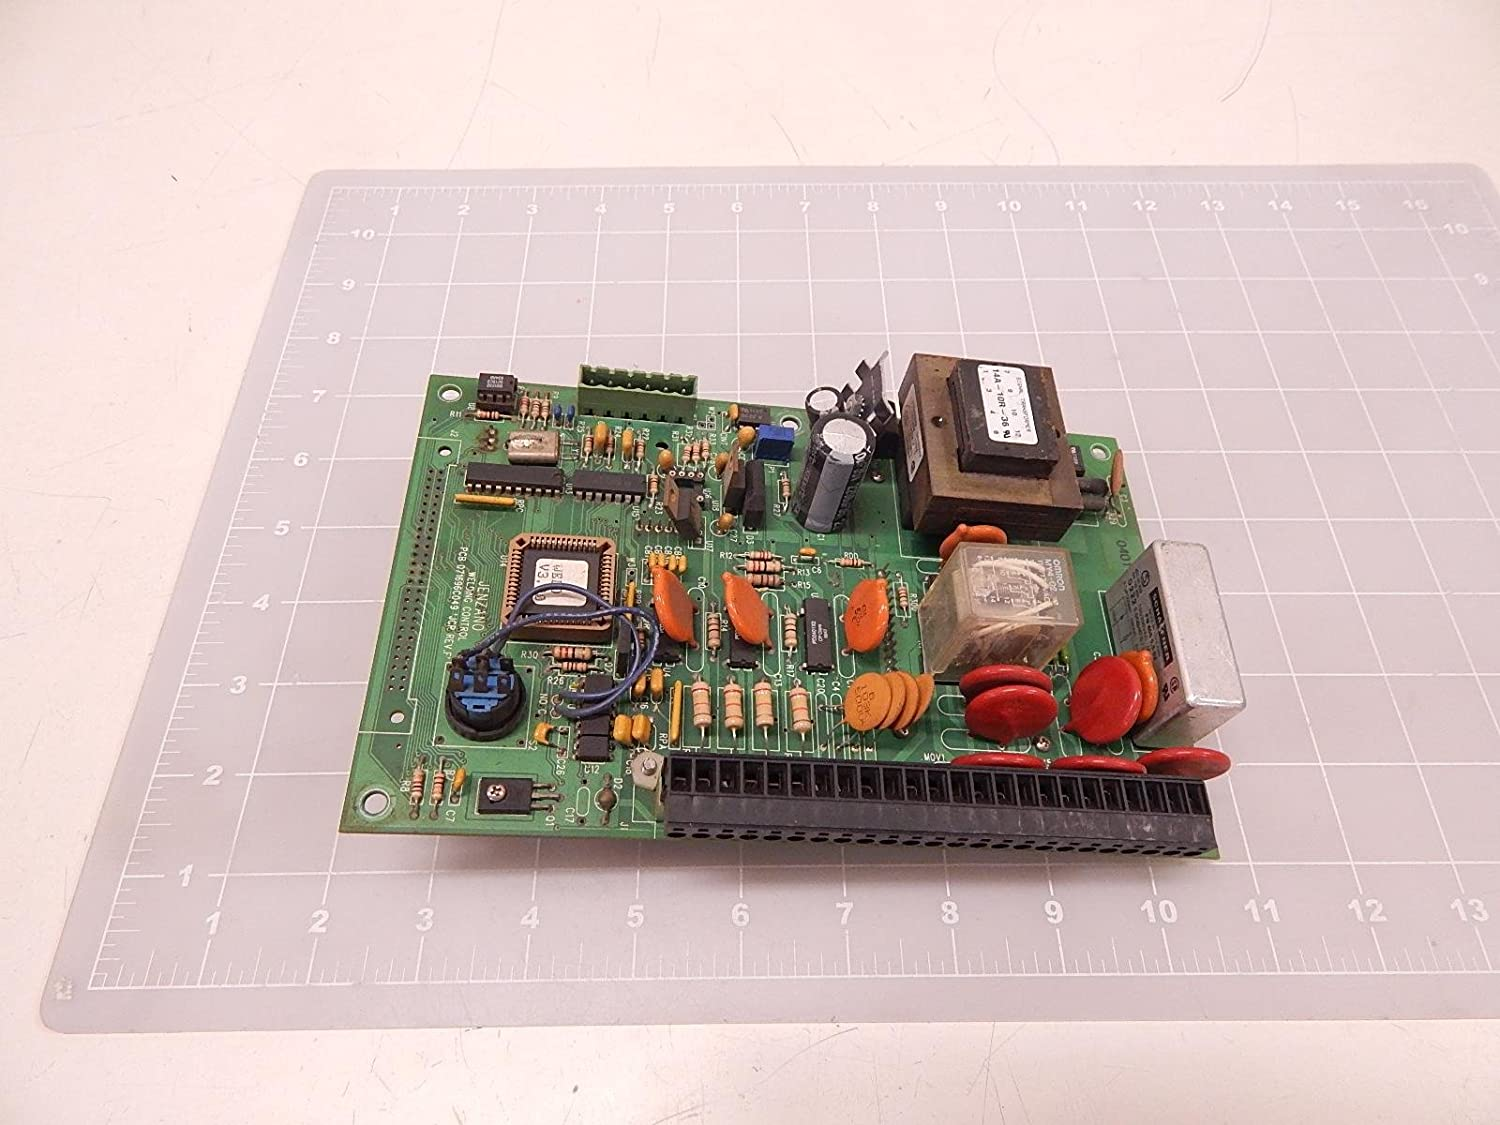 Jenzano Pcb 071696c049 Welding Control Board T79599 Spot Welder Controller Without Components Industrial Scientific